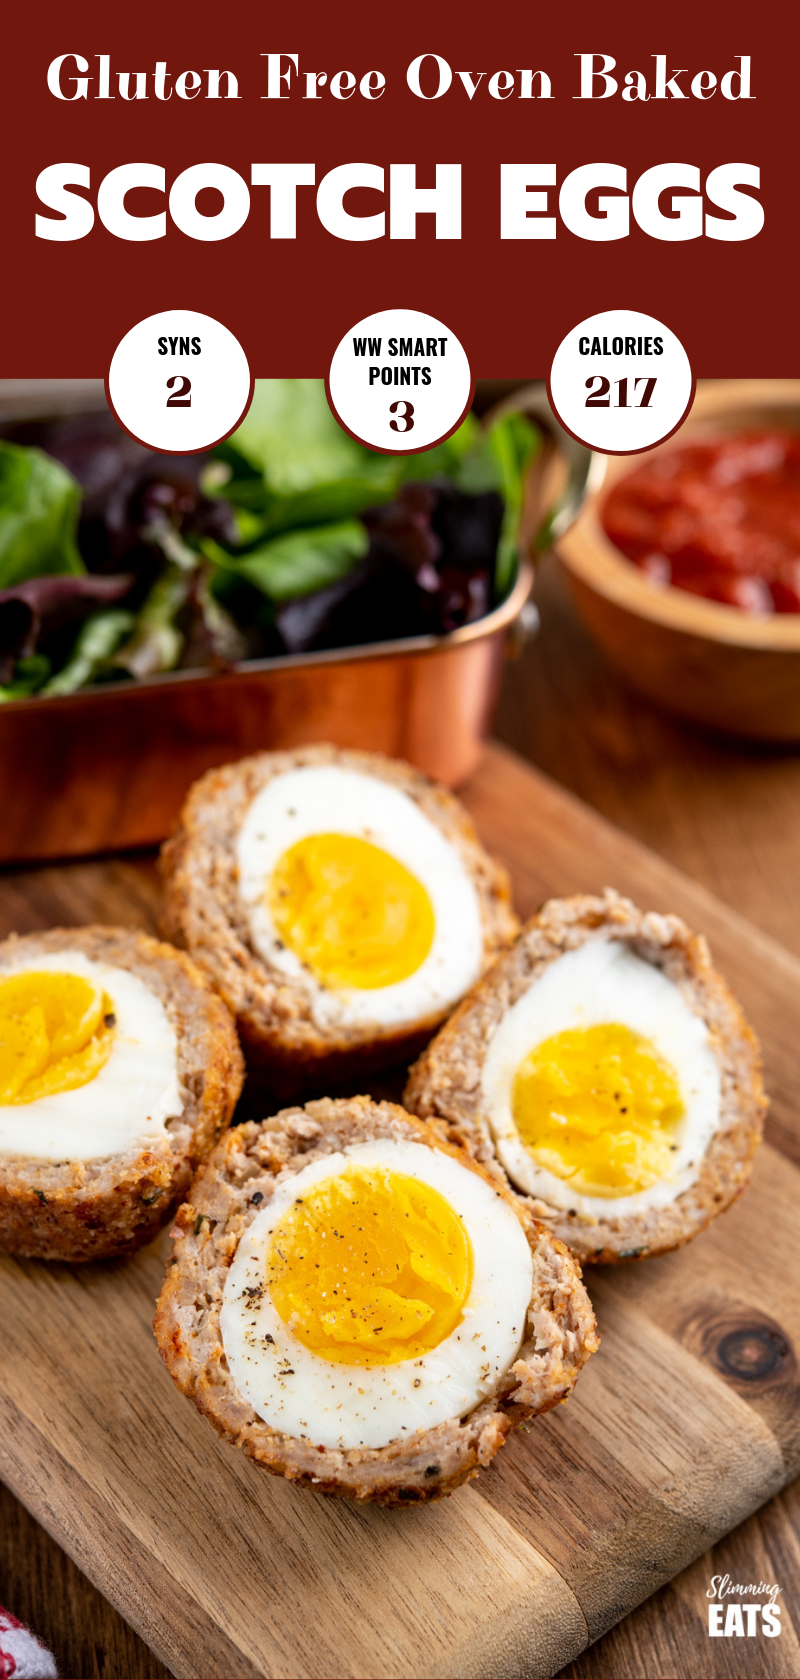 Scotch Egg pin image